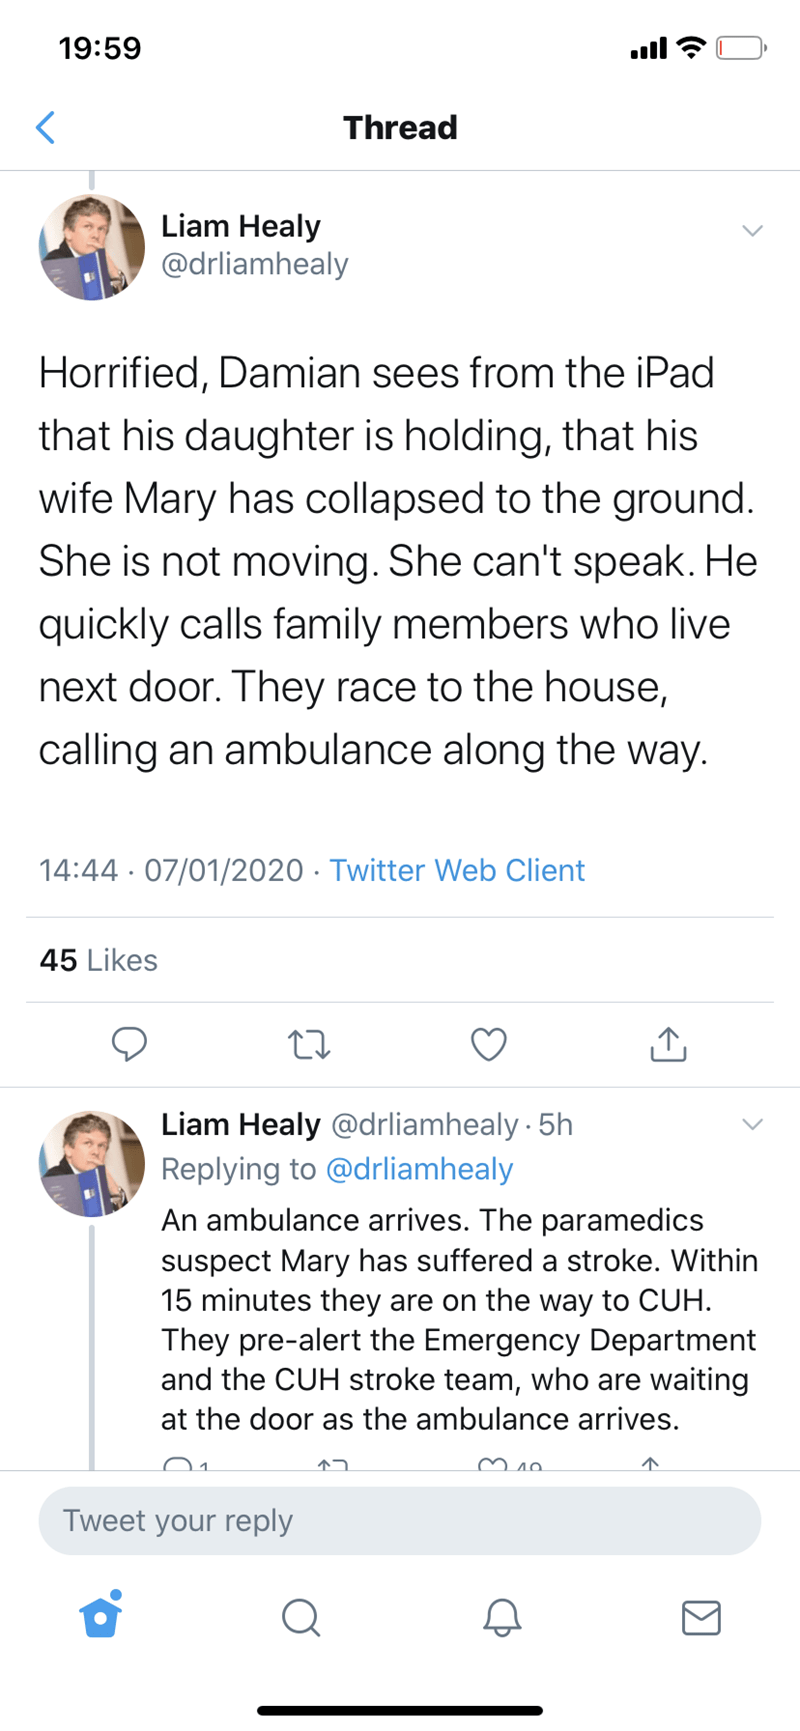 Text - 19:59 ull Thread Liam Healy @drliamhealy Horrified, Damian sees from the iPad that his daughter is holding, that his wife Mary has collapsed to the ground. She is not moving. She can't speak. He quickly calls family members who live next door. They race to the house, calling an ambulance along the way. 14:44 · 07/01/2020 · Twitter Web Client 45 Likes Liam Healy @drliamhealy 5h Replying to @drliamhealy An ambulance arrives. The paramedics suspect Mary has suffered a stroke. Within 15 minut